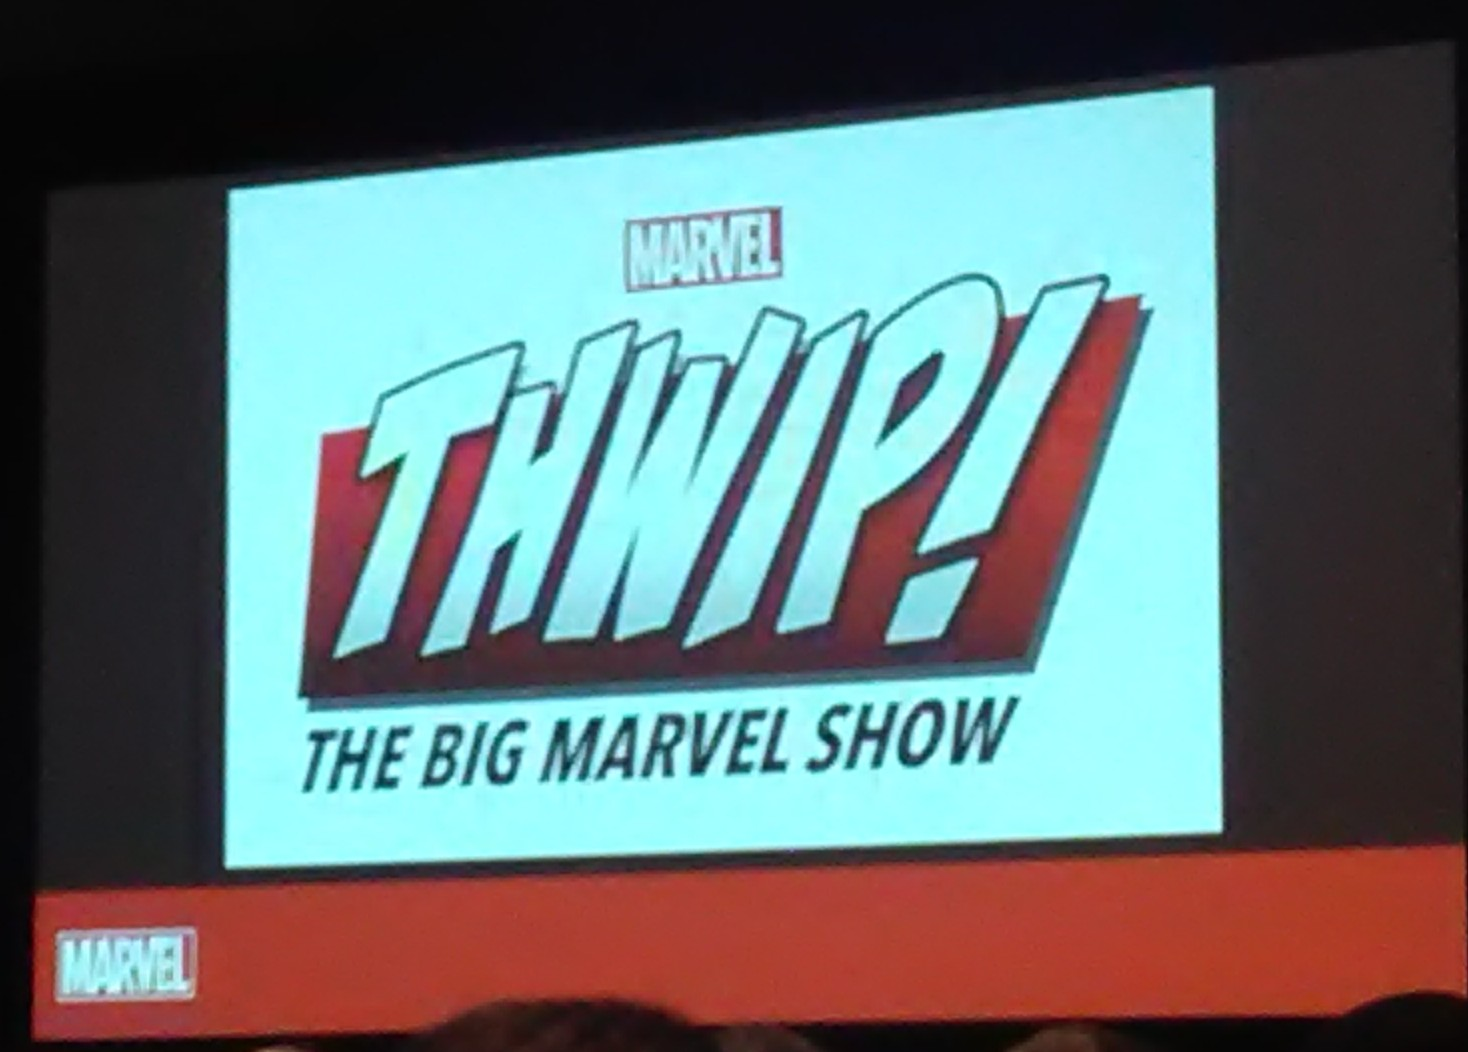 C2E2: Marvel Thwip! The New Digital TV Variety Series